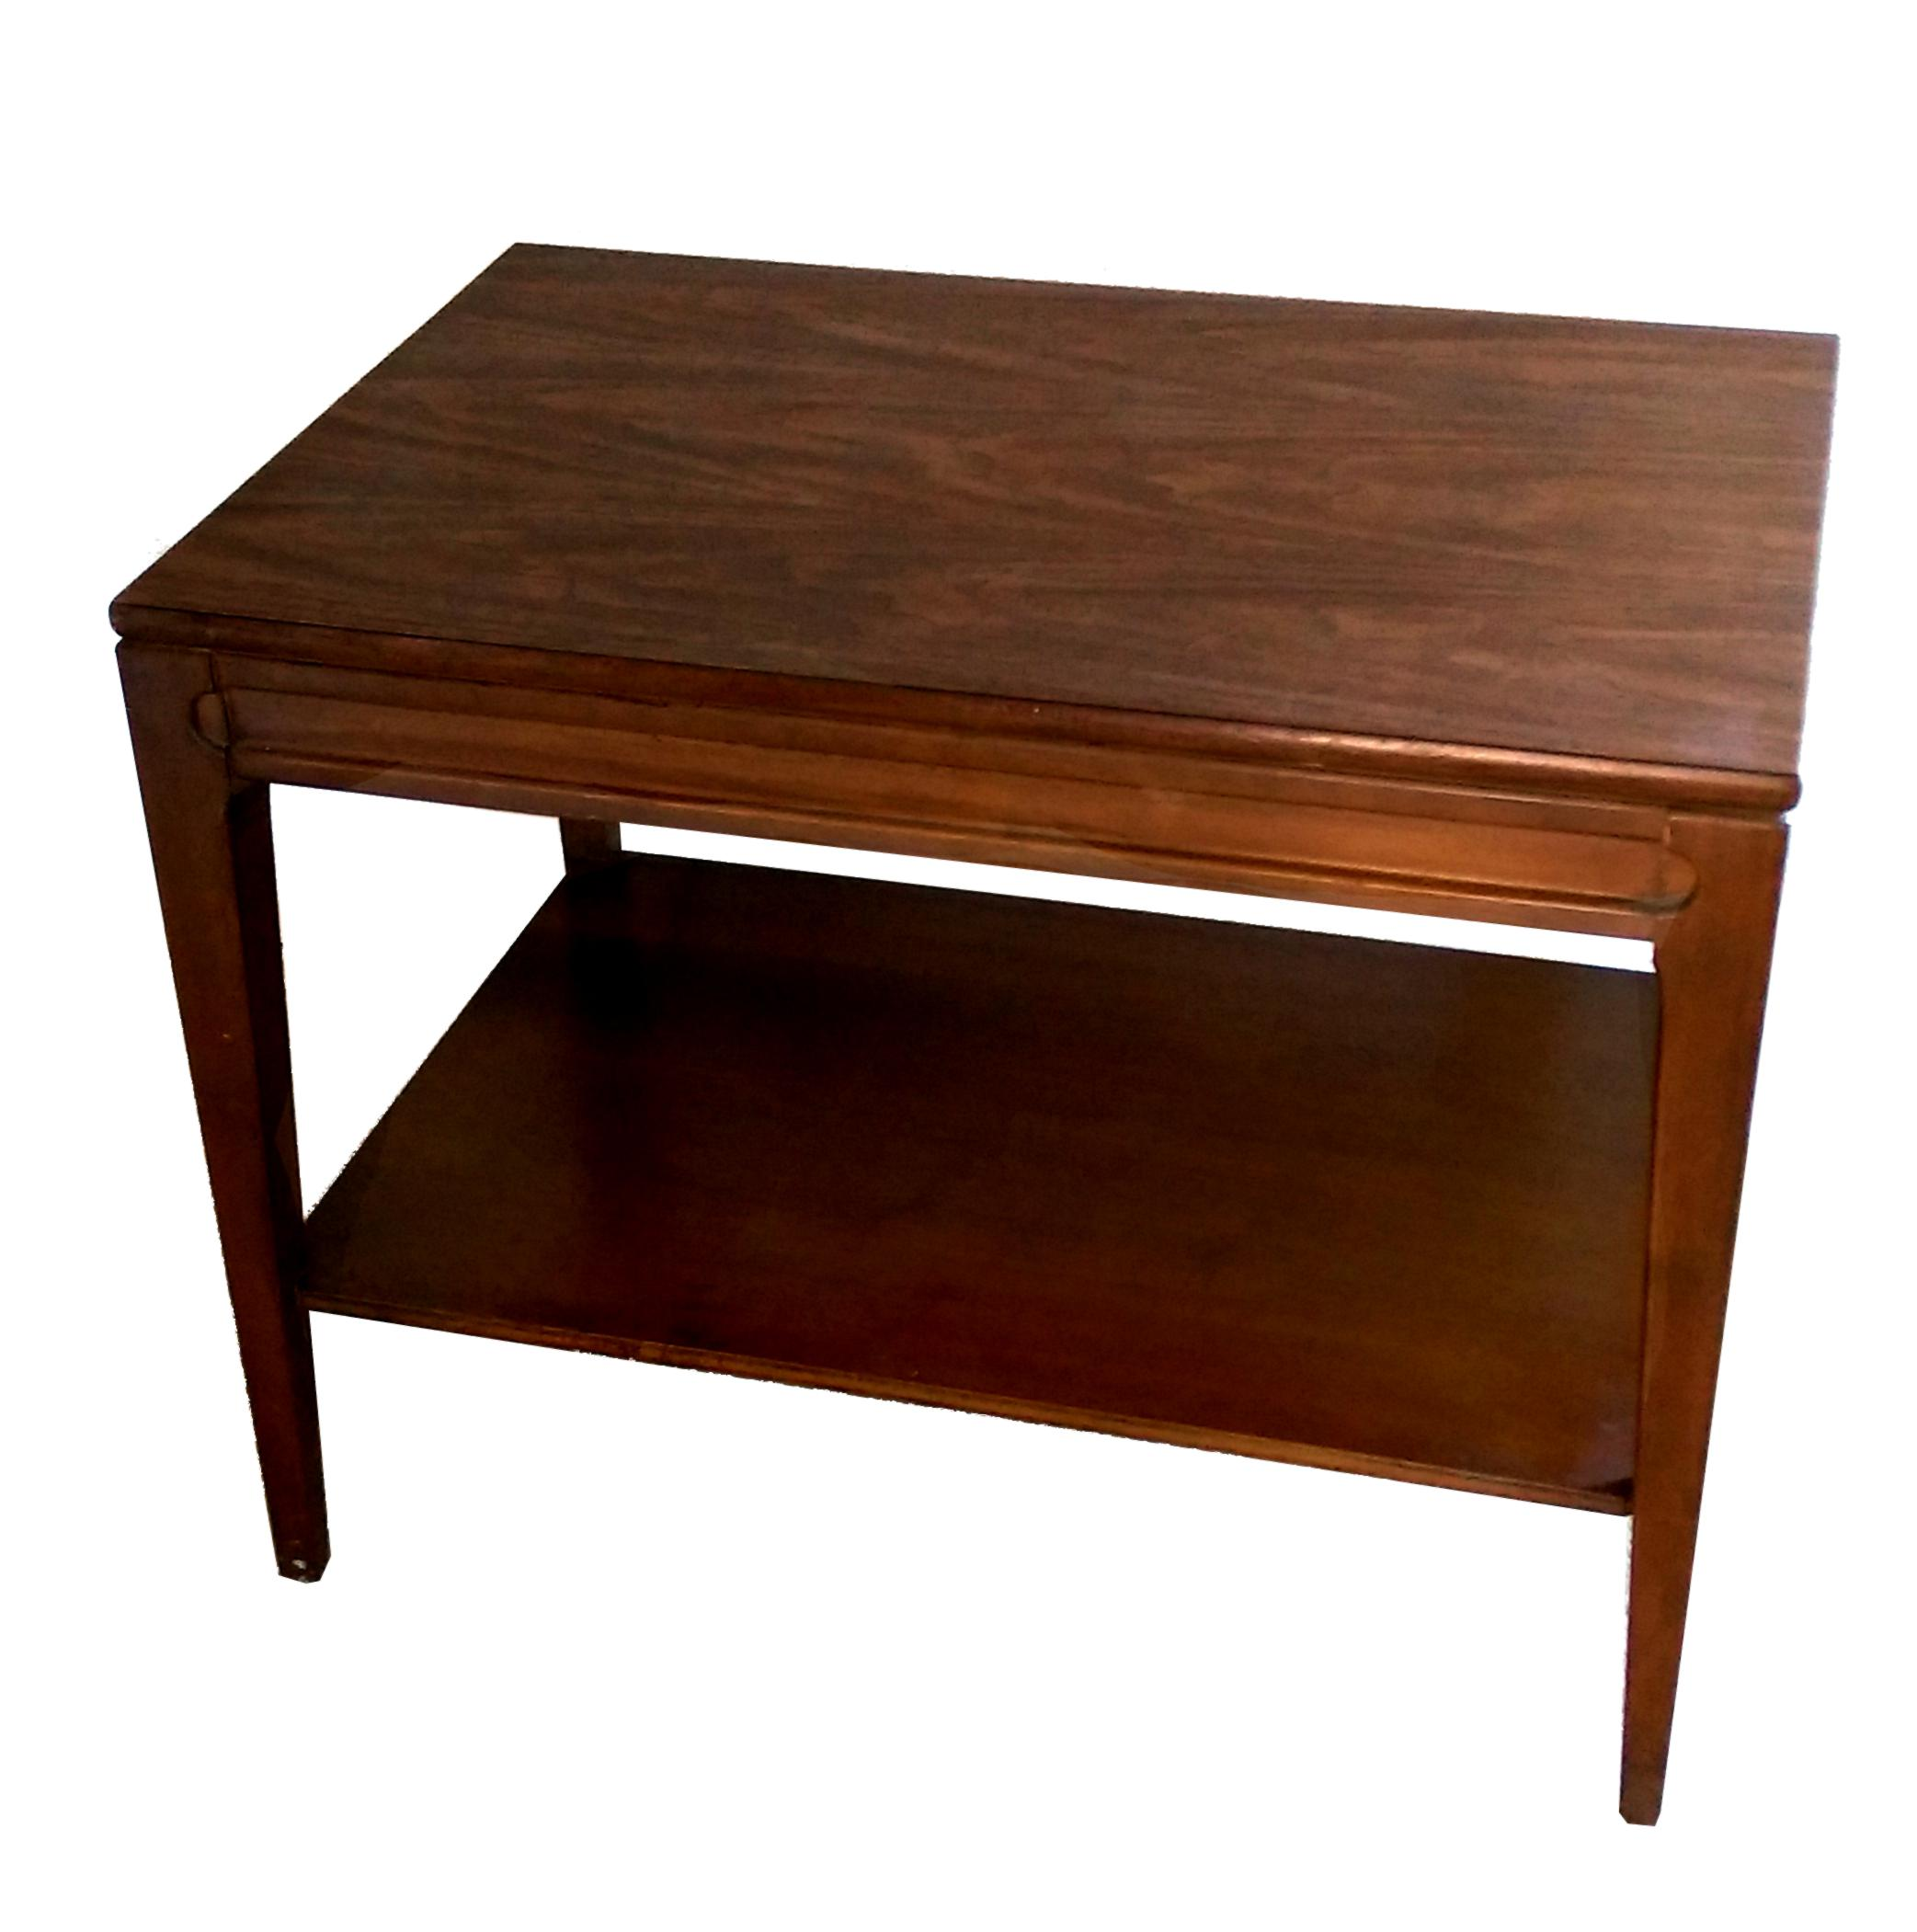 MidCentury Mersman Walnut Coffee Table Chairish